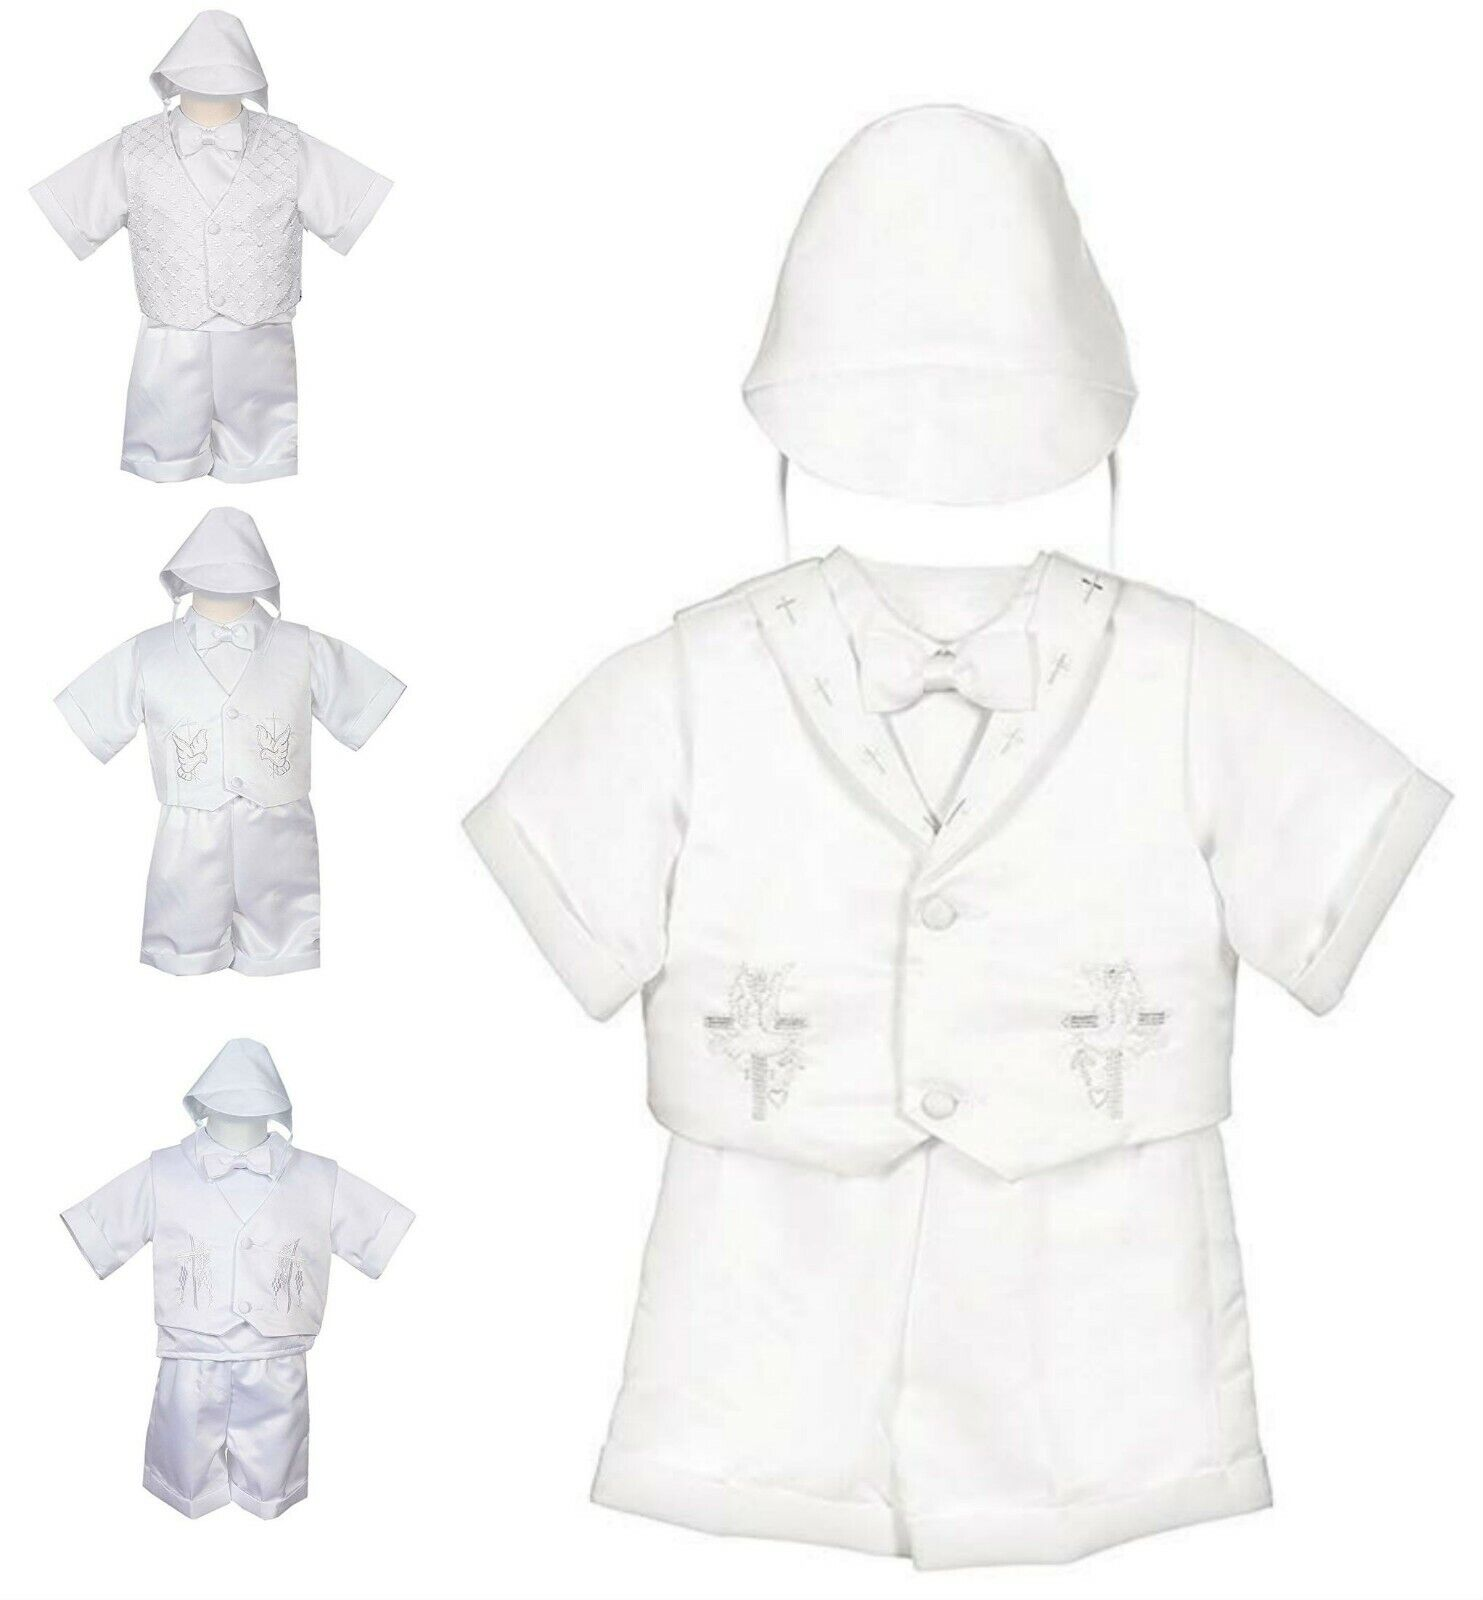 Baptism Christening Outfit Boys Infant Baby Toddler White Bo